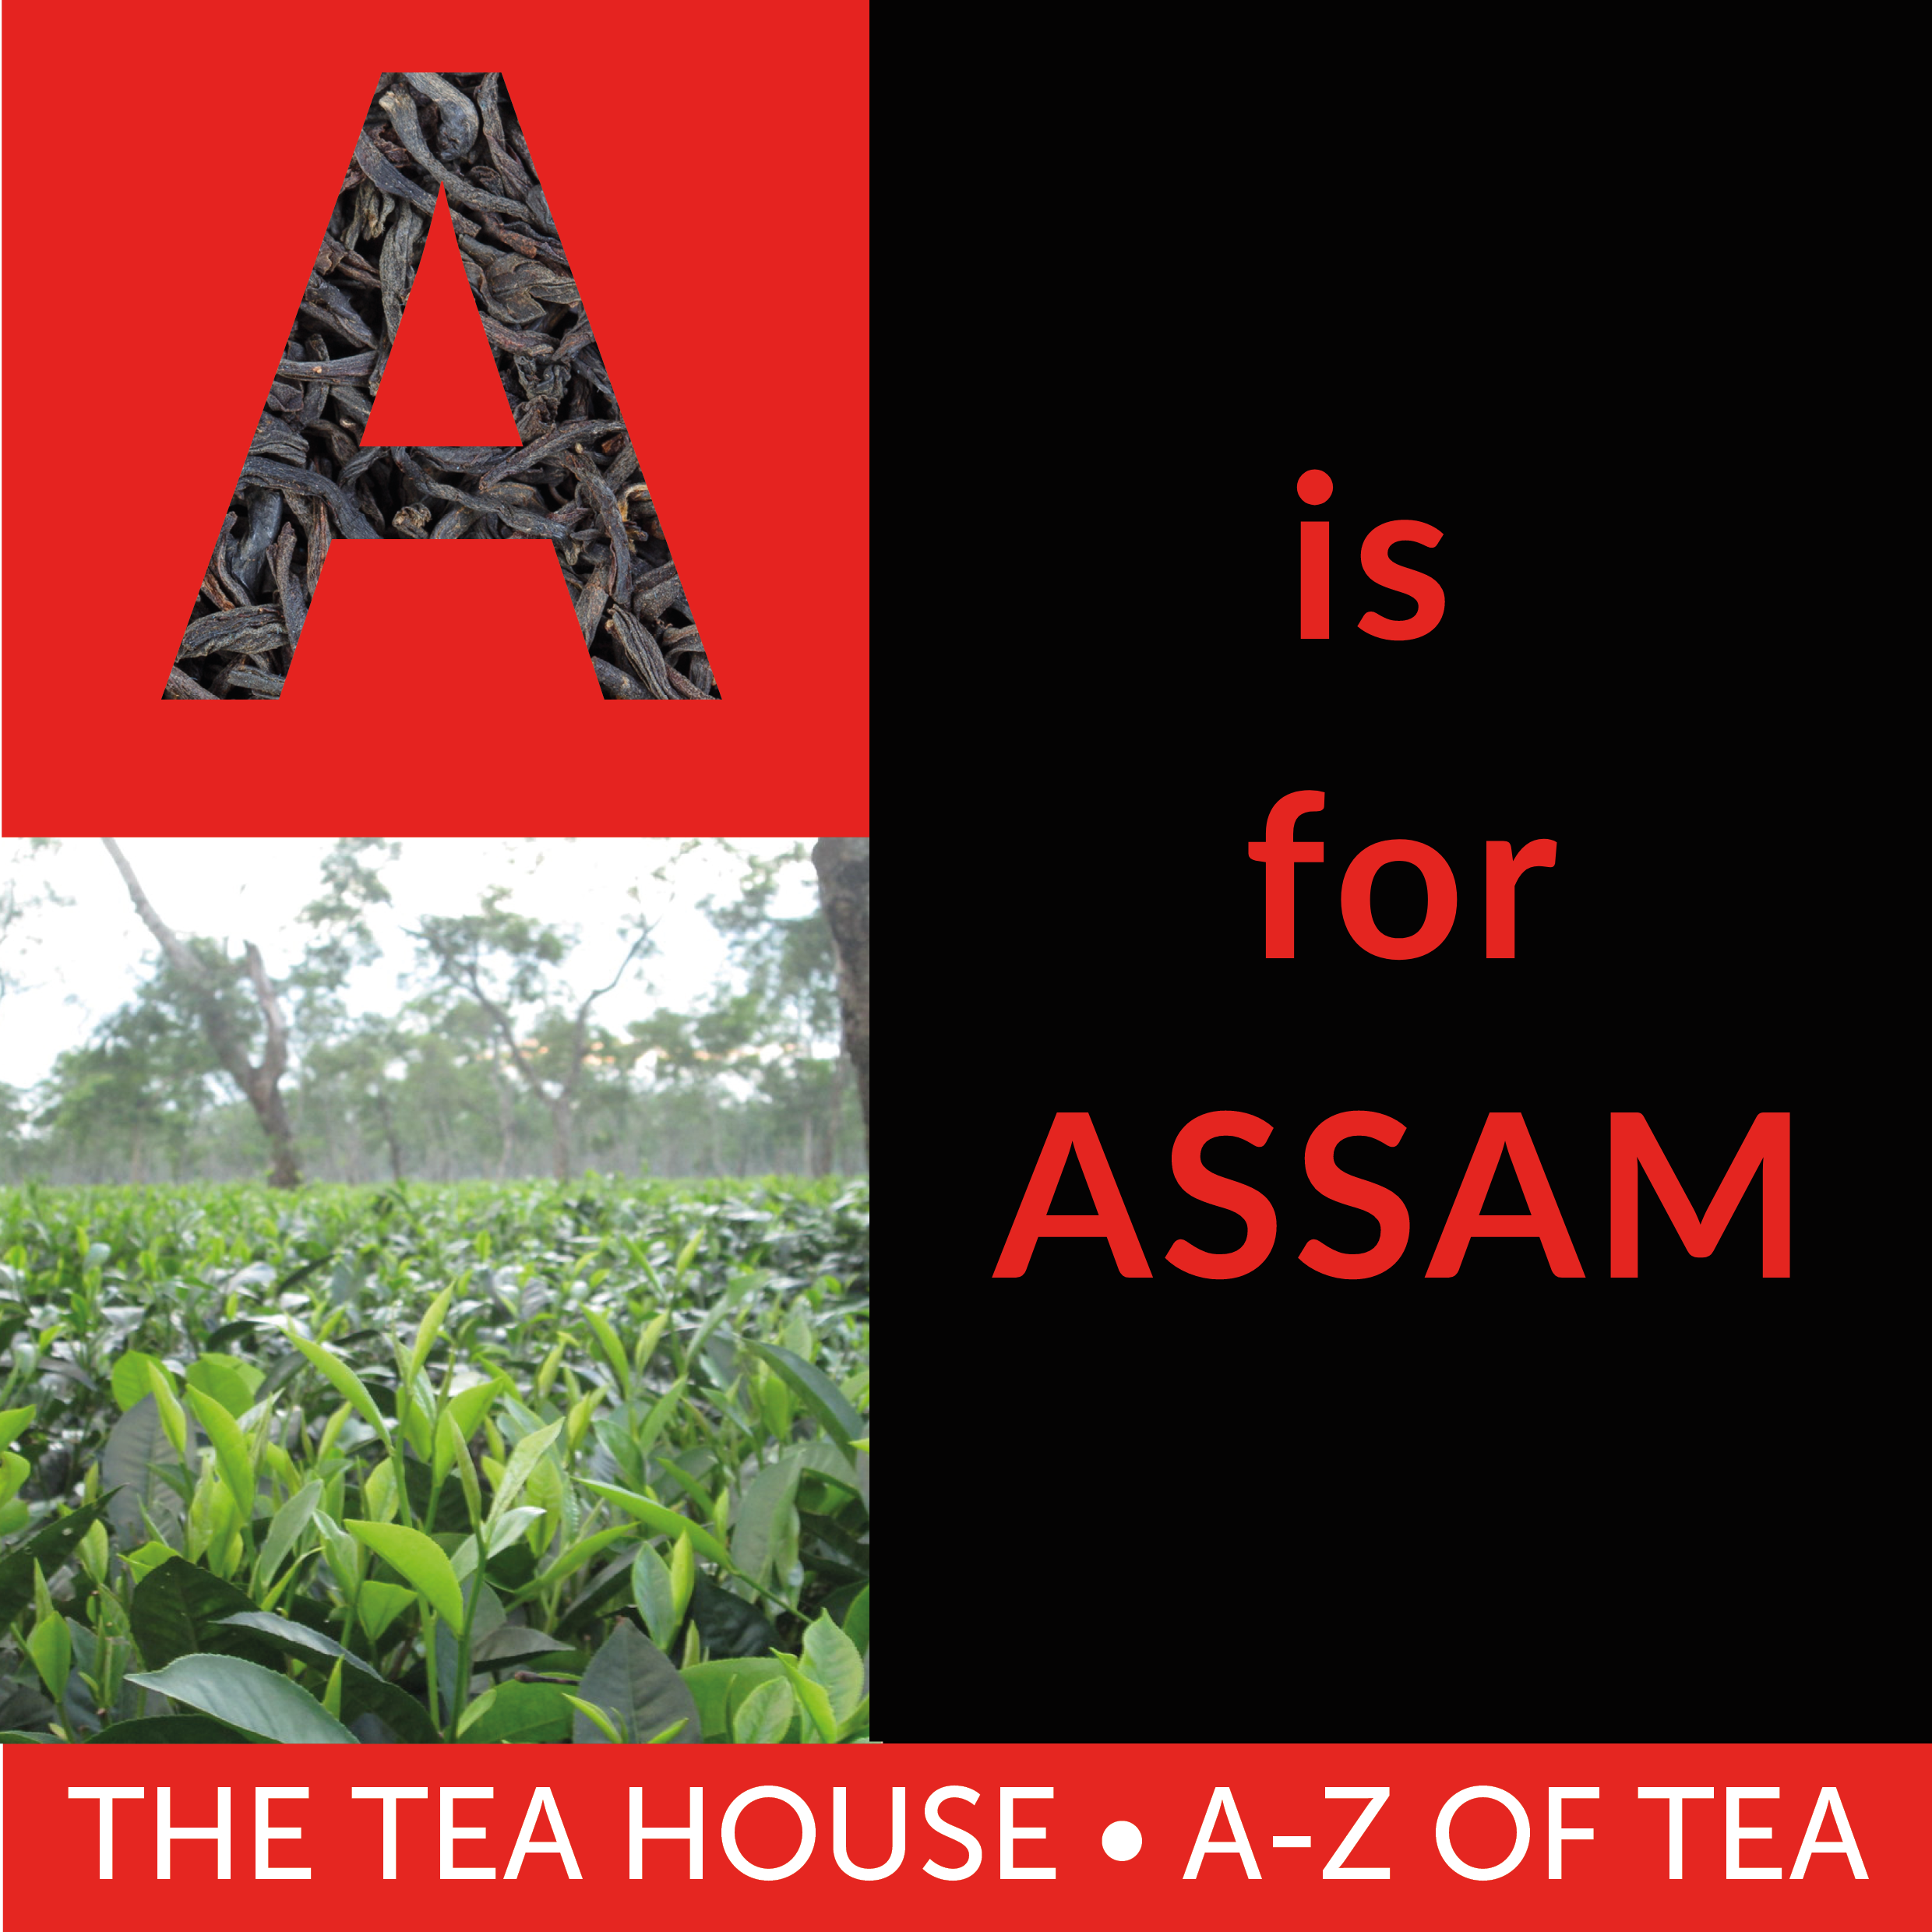 A is for Assam